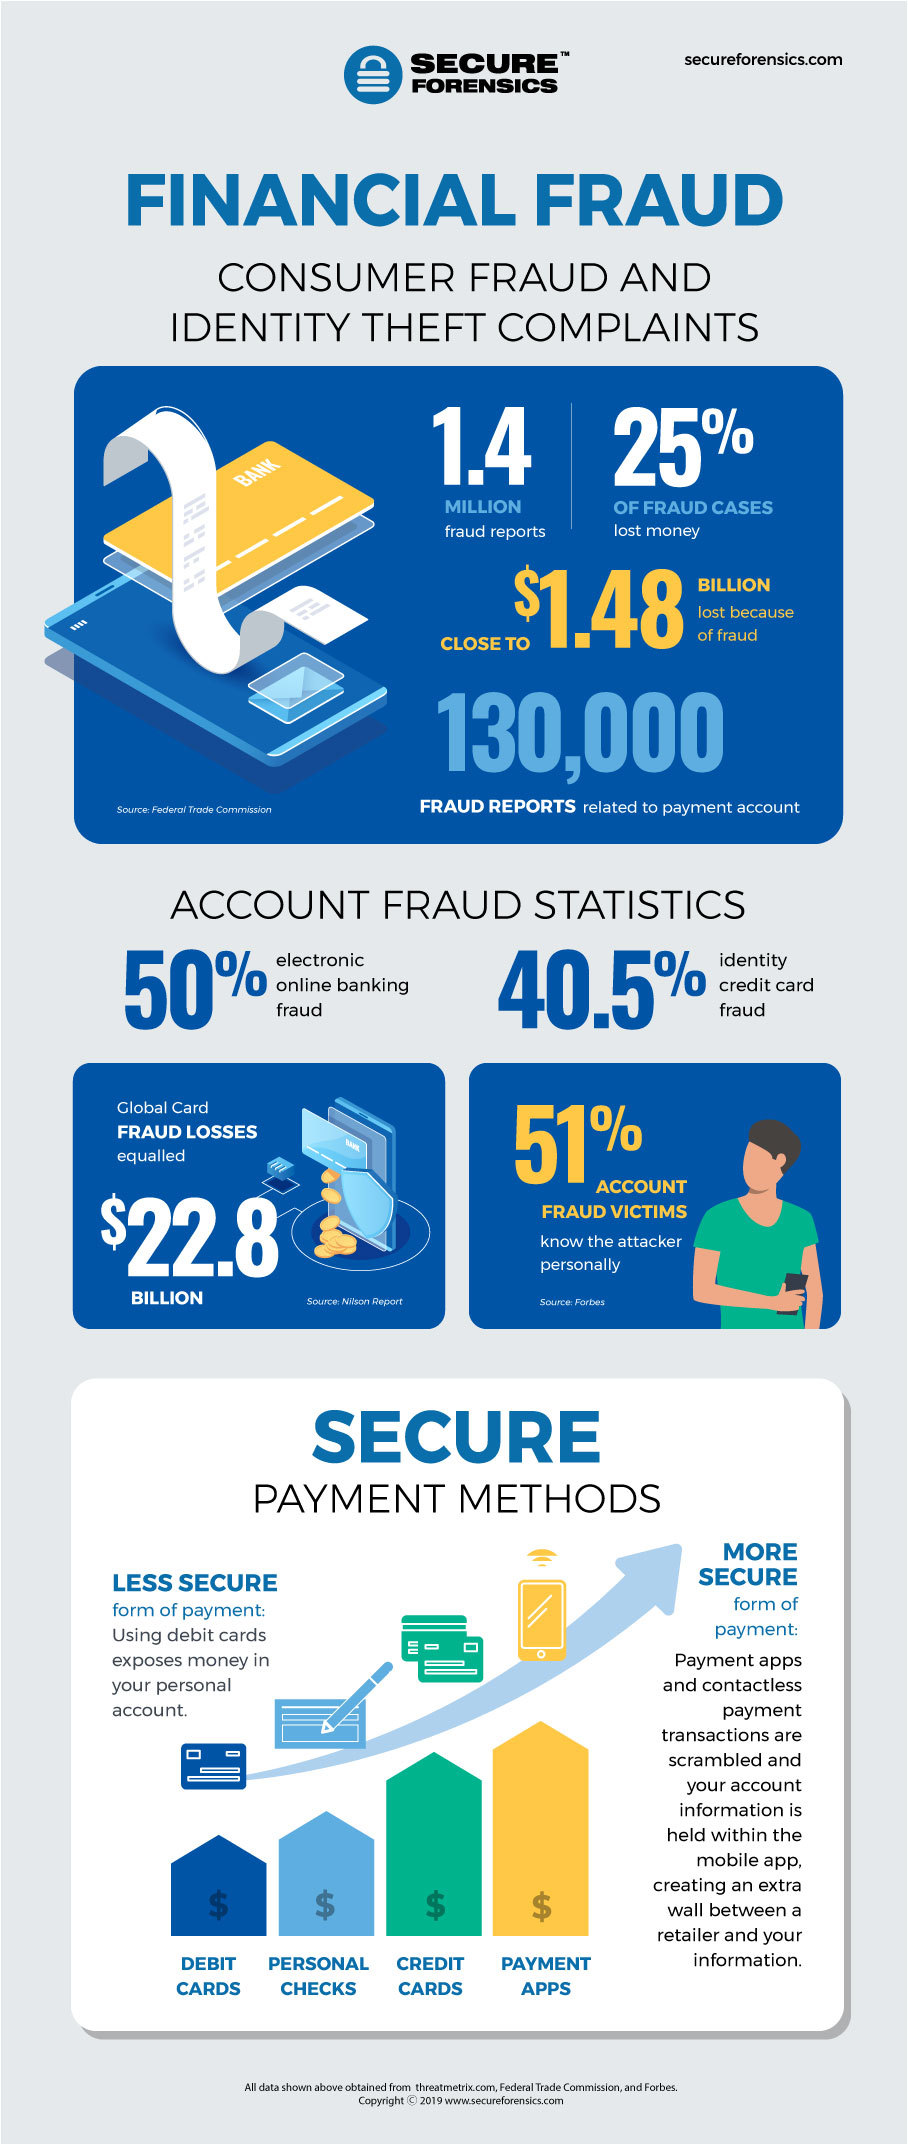 Consumers Have Many Complaints of Financial Fraud